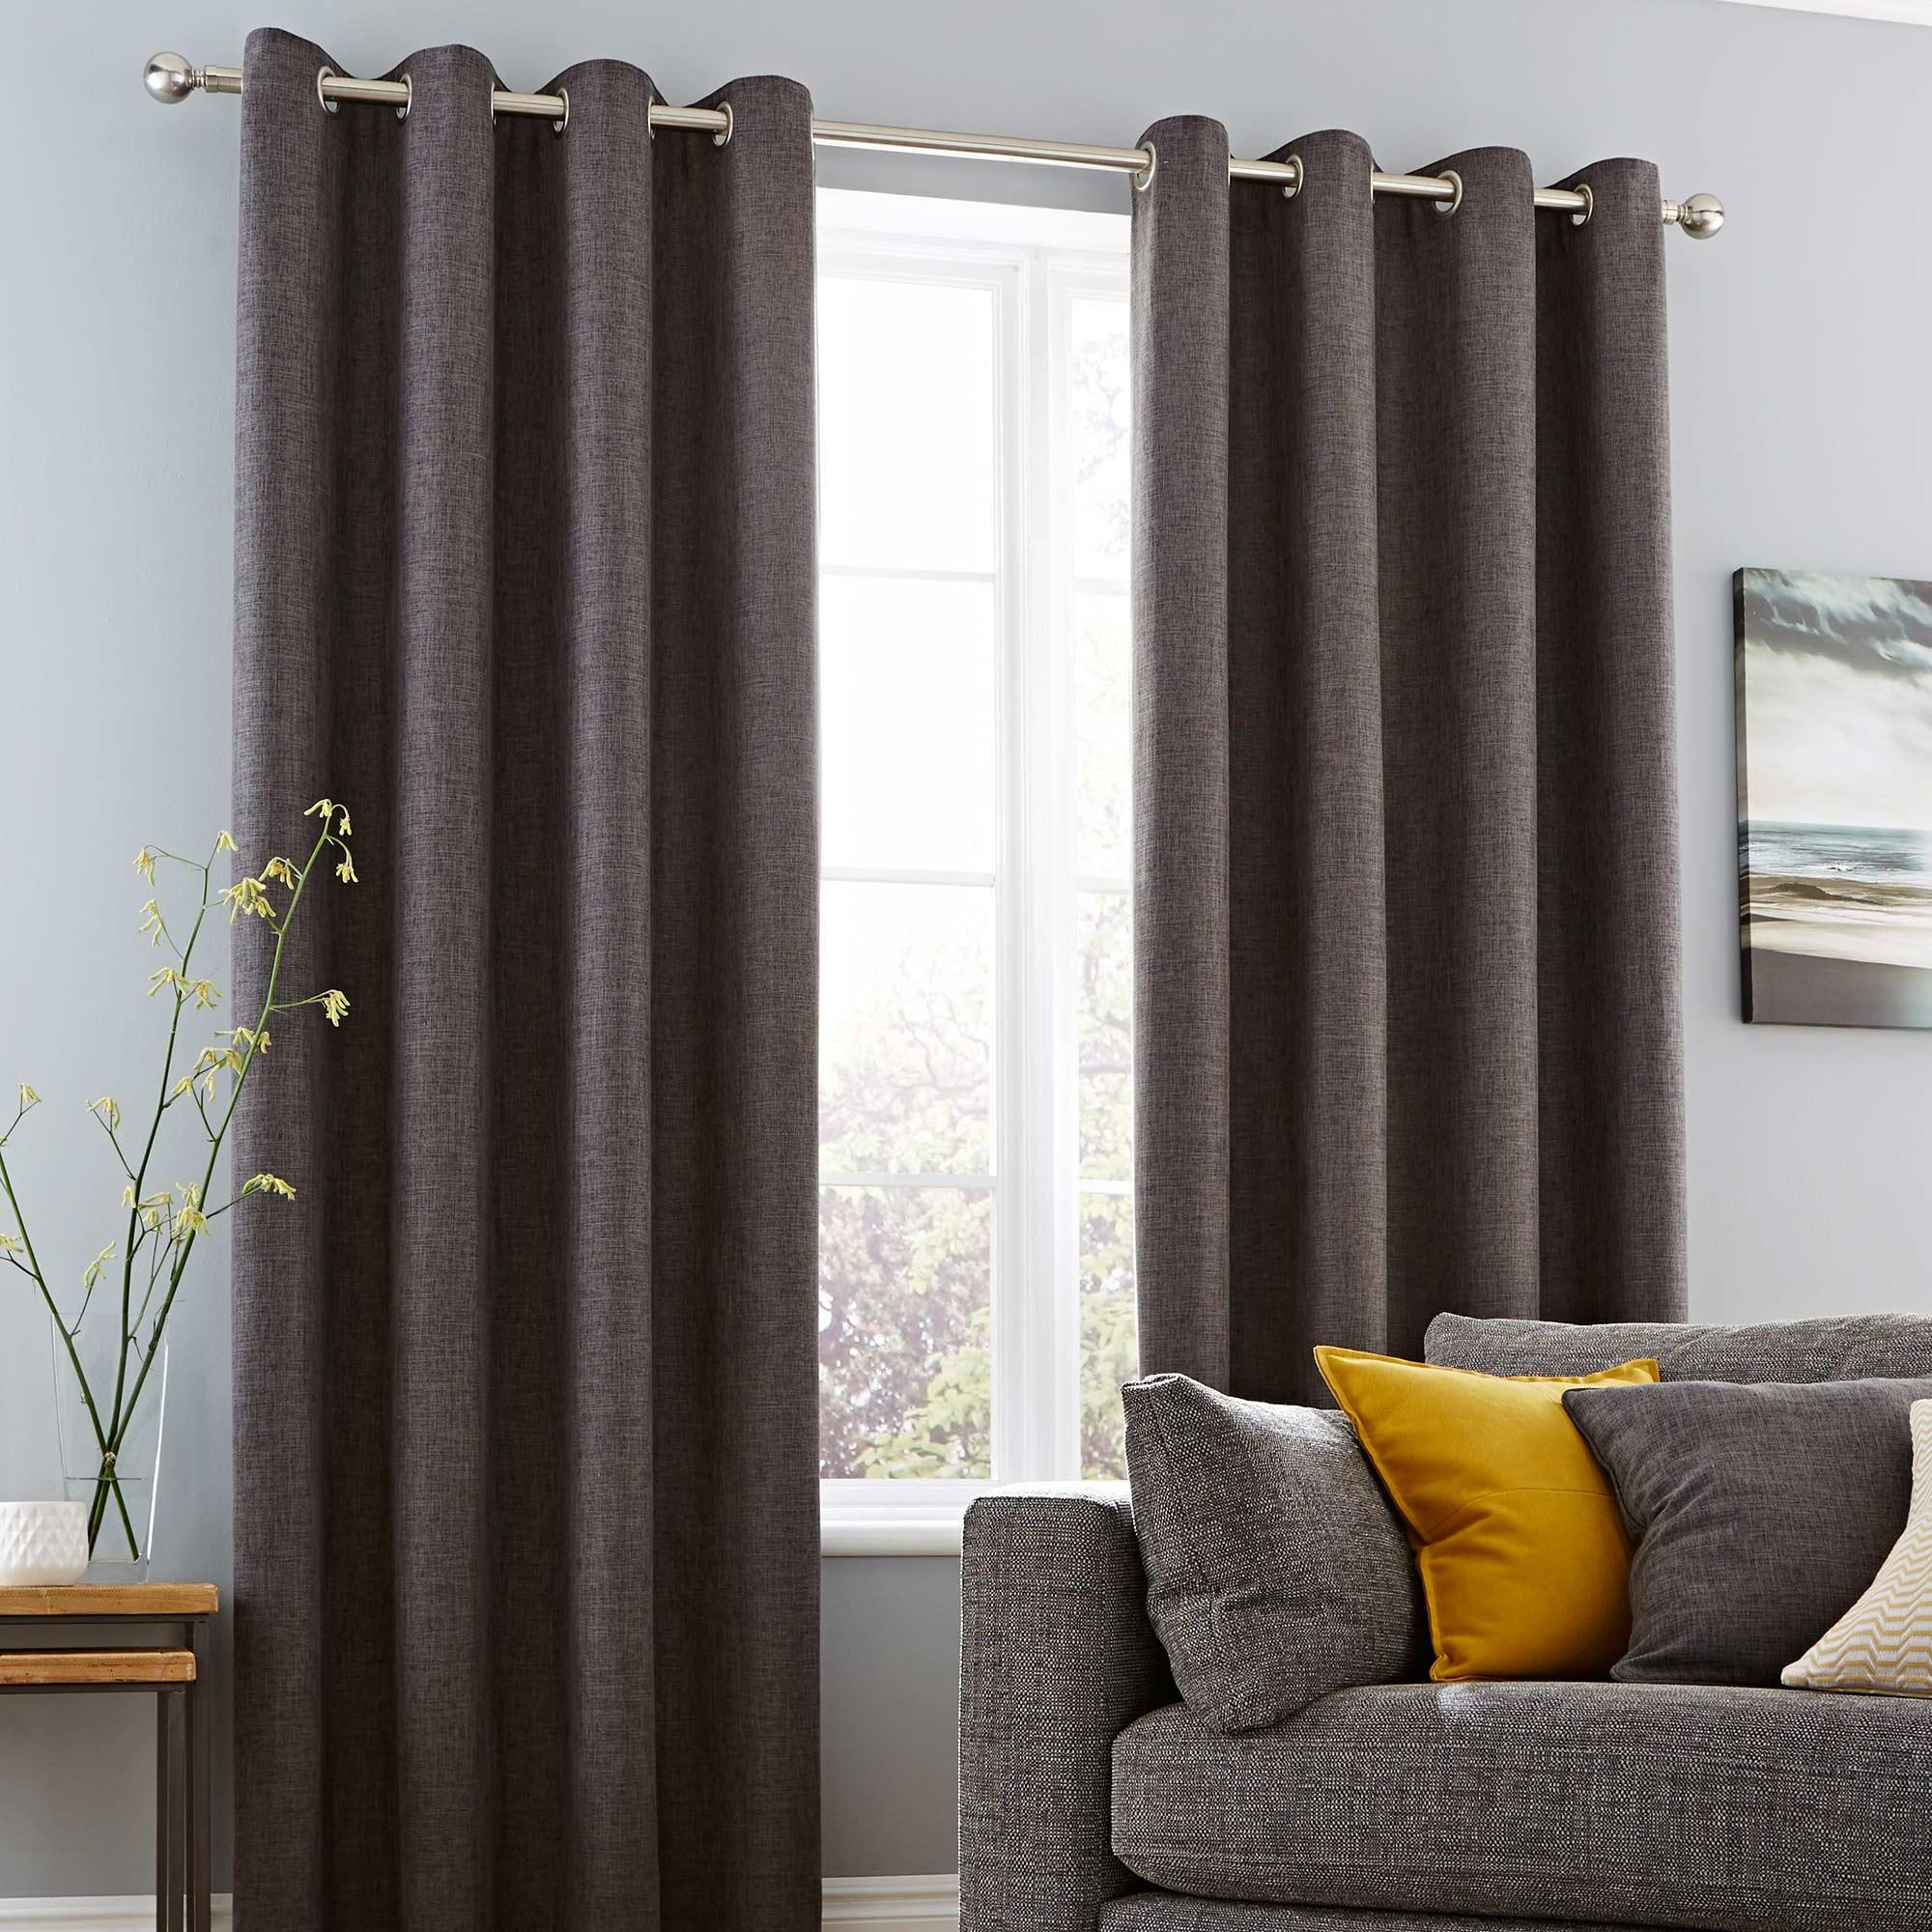 vermont charcoal lined eyelet curtains XVWNHXZ